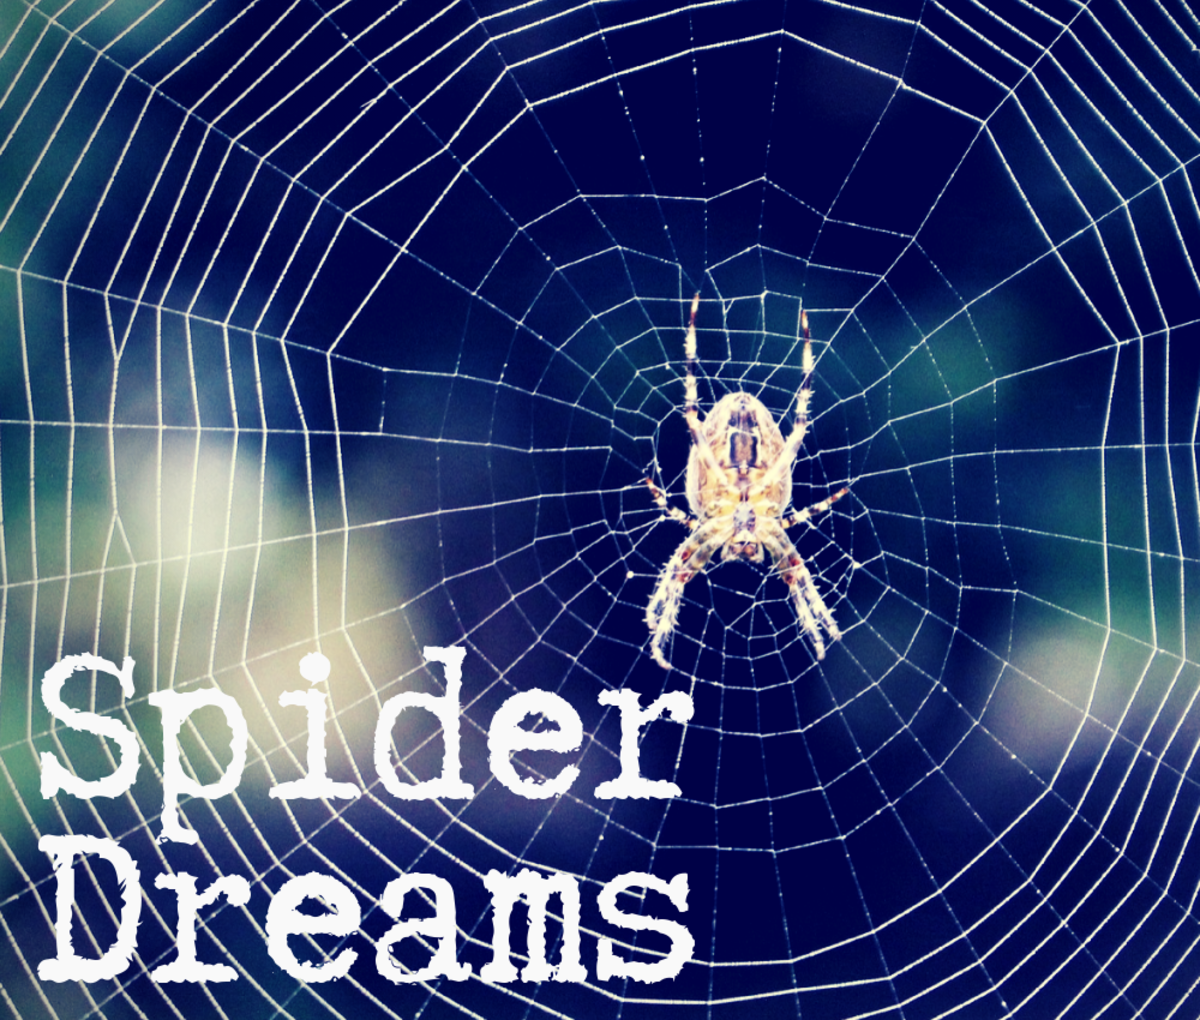 What does it mean if you dream about spiders or spider webs?